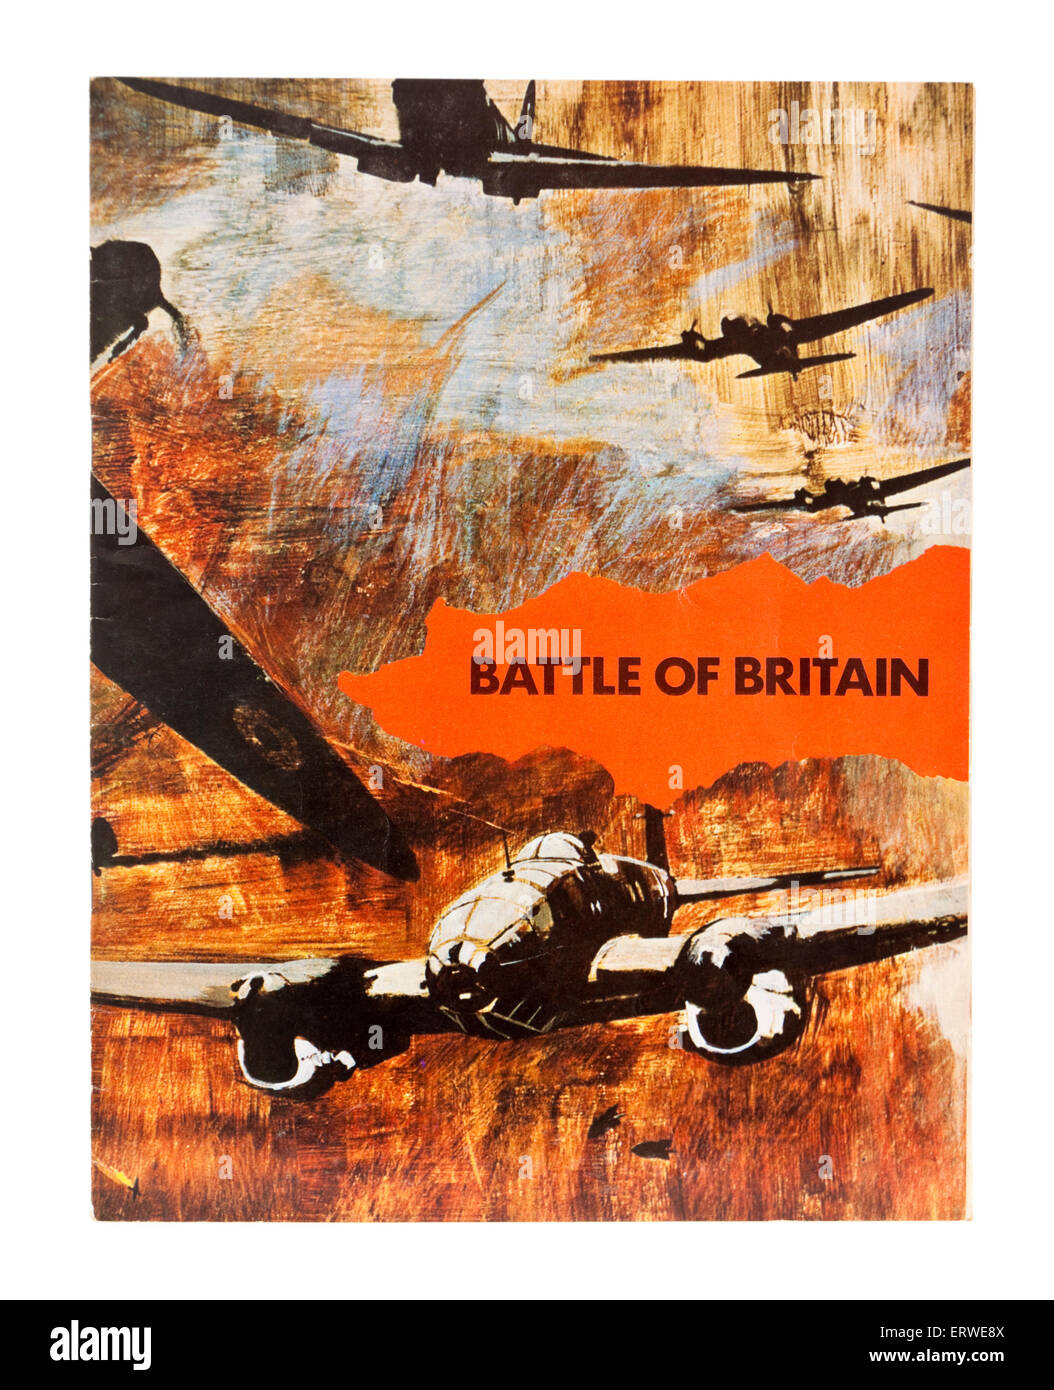 Vintage original cinema brochure for 'The Battle of Britain', a 1969 British Second World War film directed - Stock Image